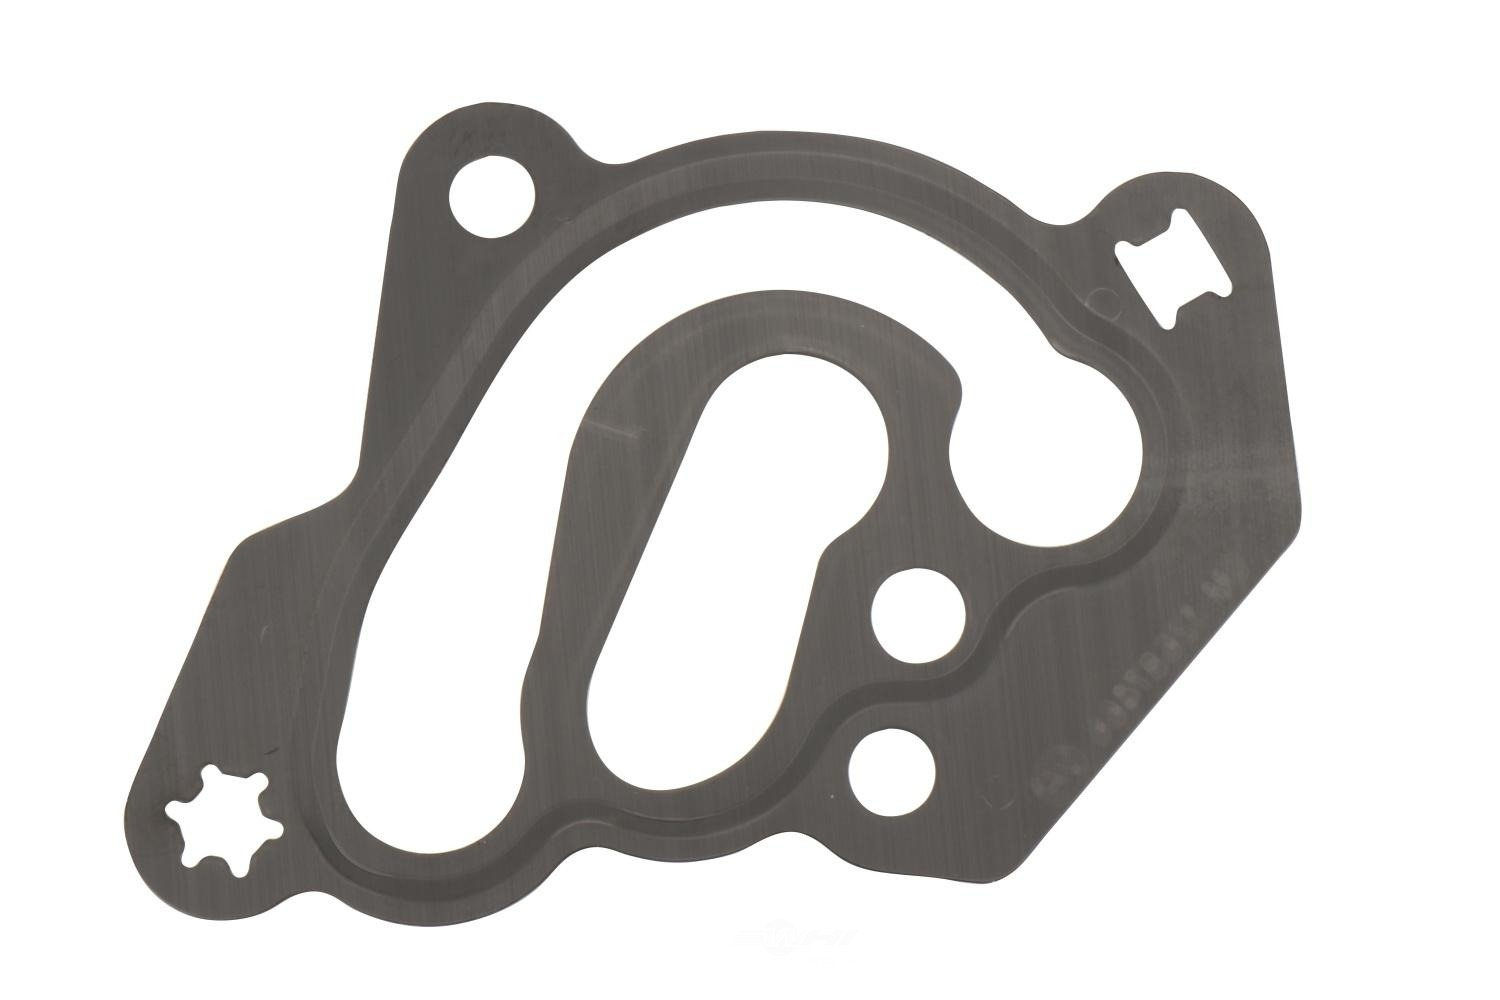 ACDELCO GOLD/PROFESSIONAL - Engine Oil Filter Gasket - DCC 12687466